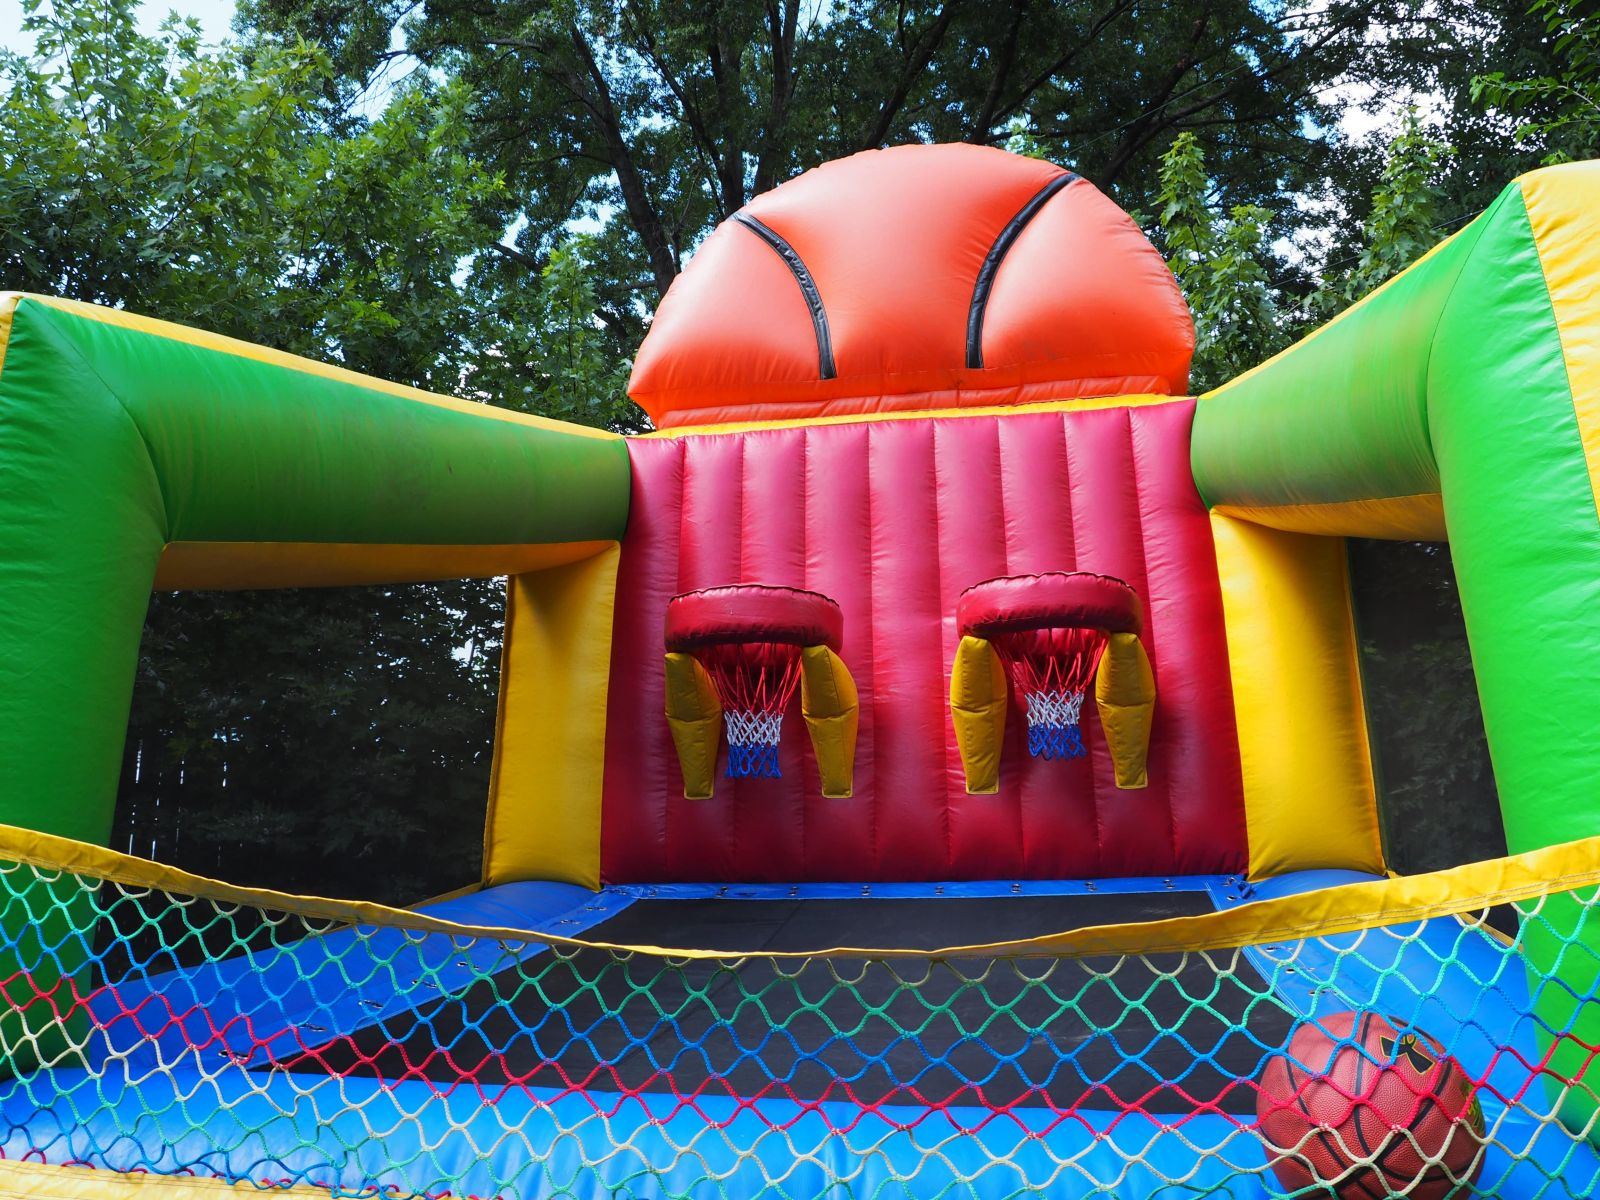 Close up view of inflated basketball hoop challenge game.